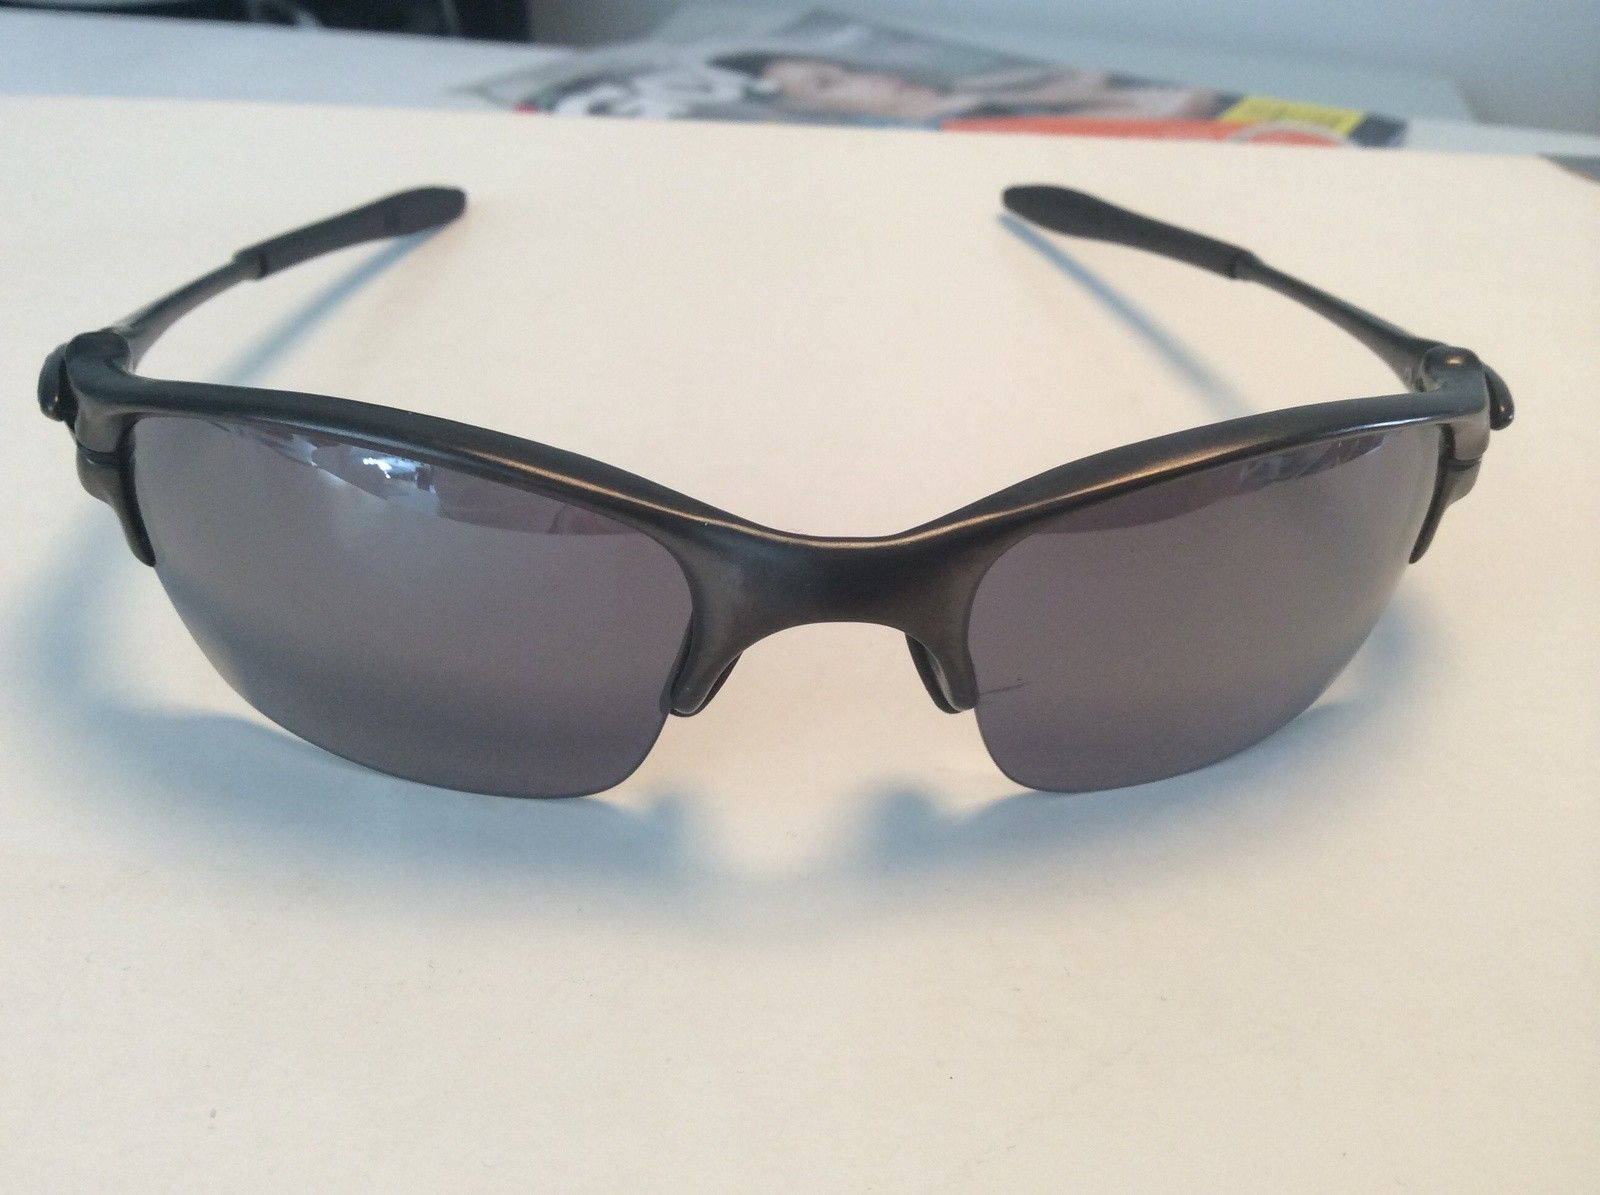 Half-X Carbon/BI - with BNIB Ruby & Emerald lenses - OPEN TO OFFERS OR TRADE... - image.jpg